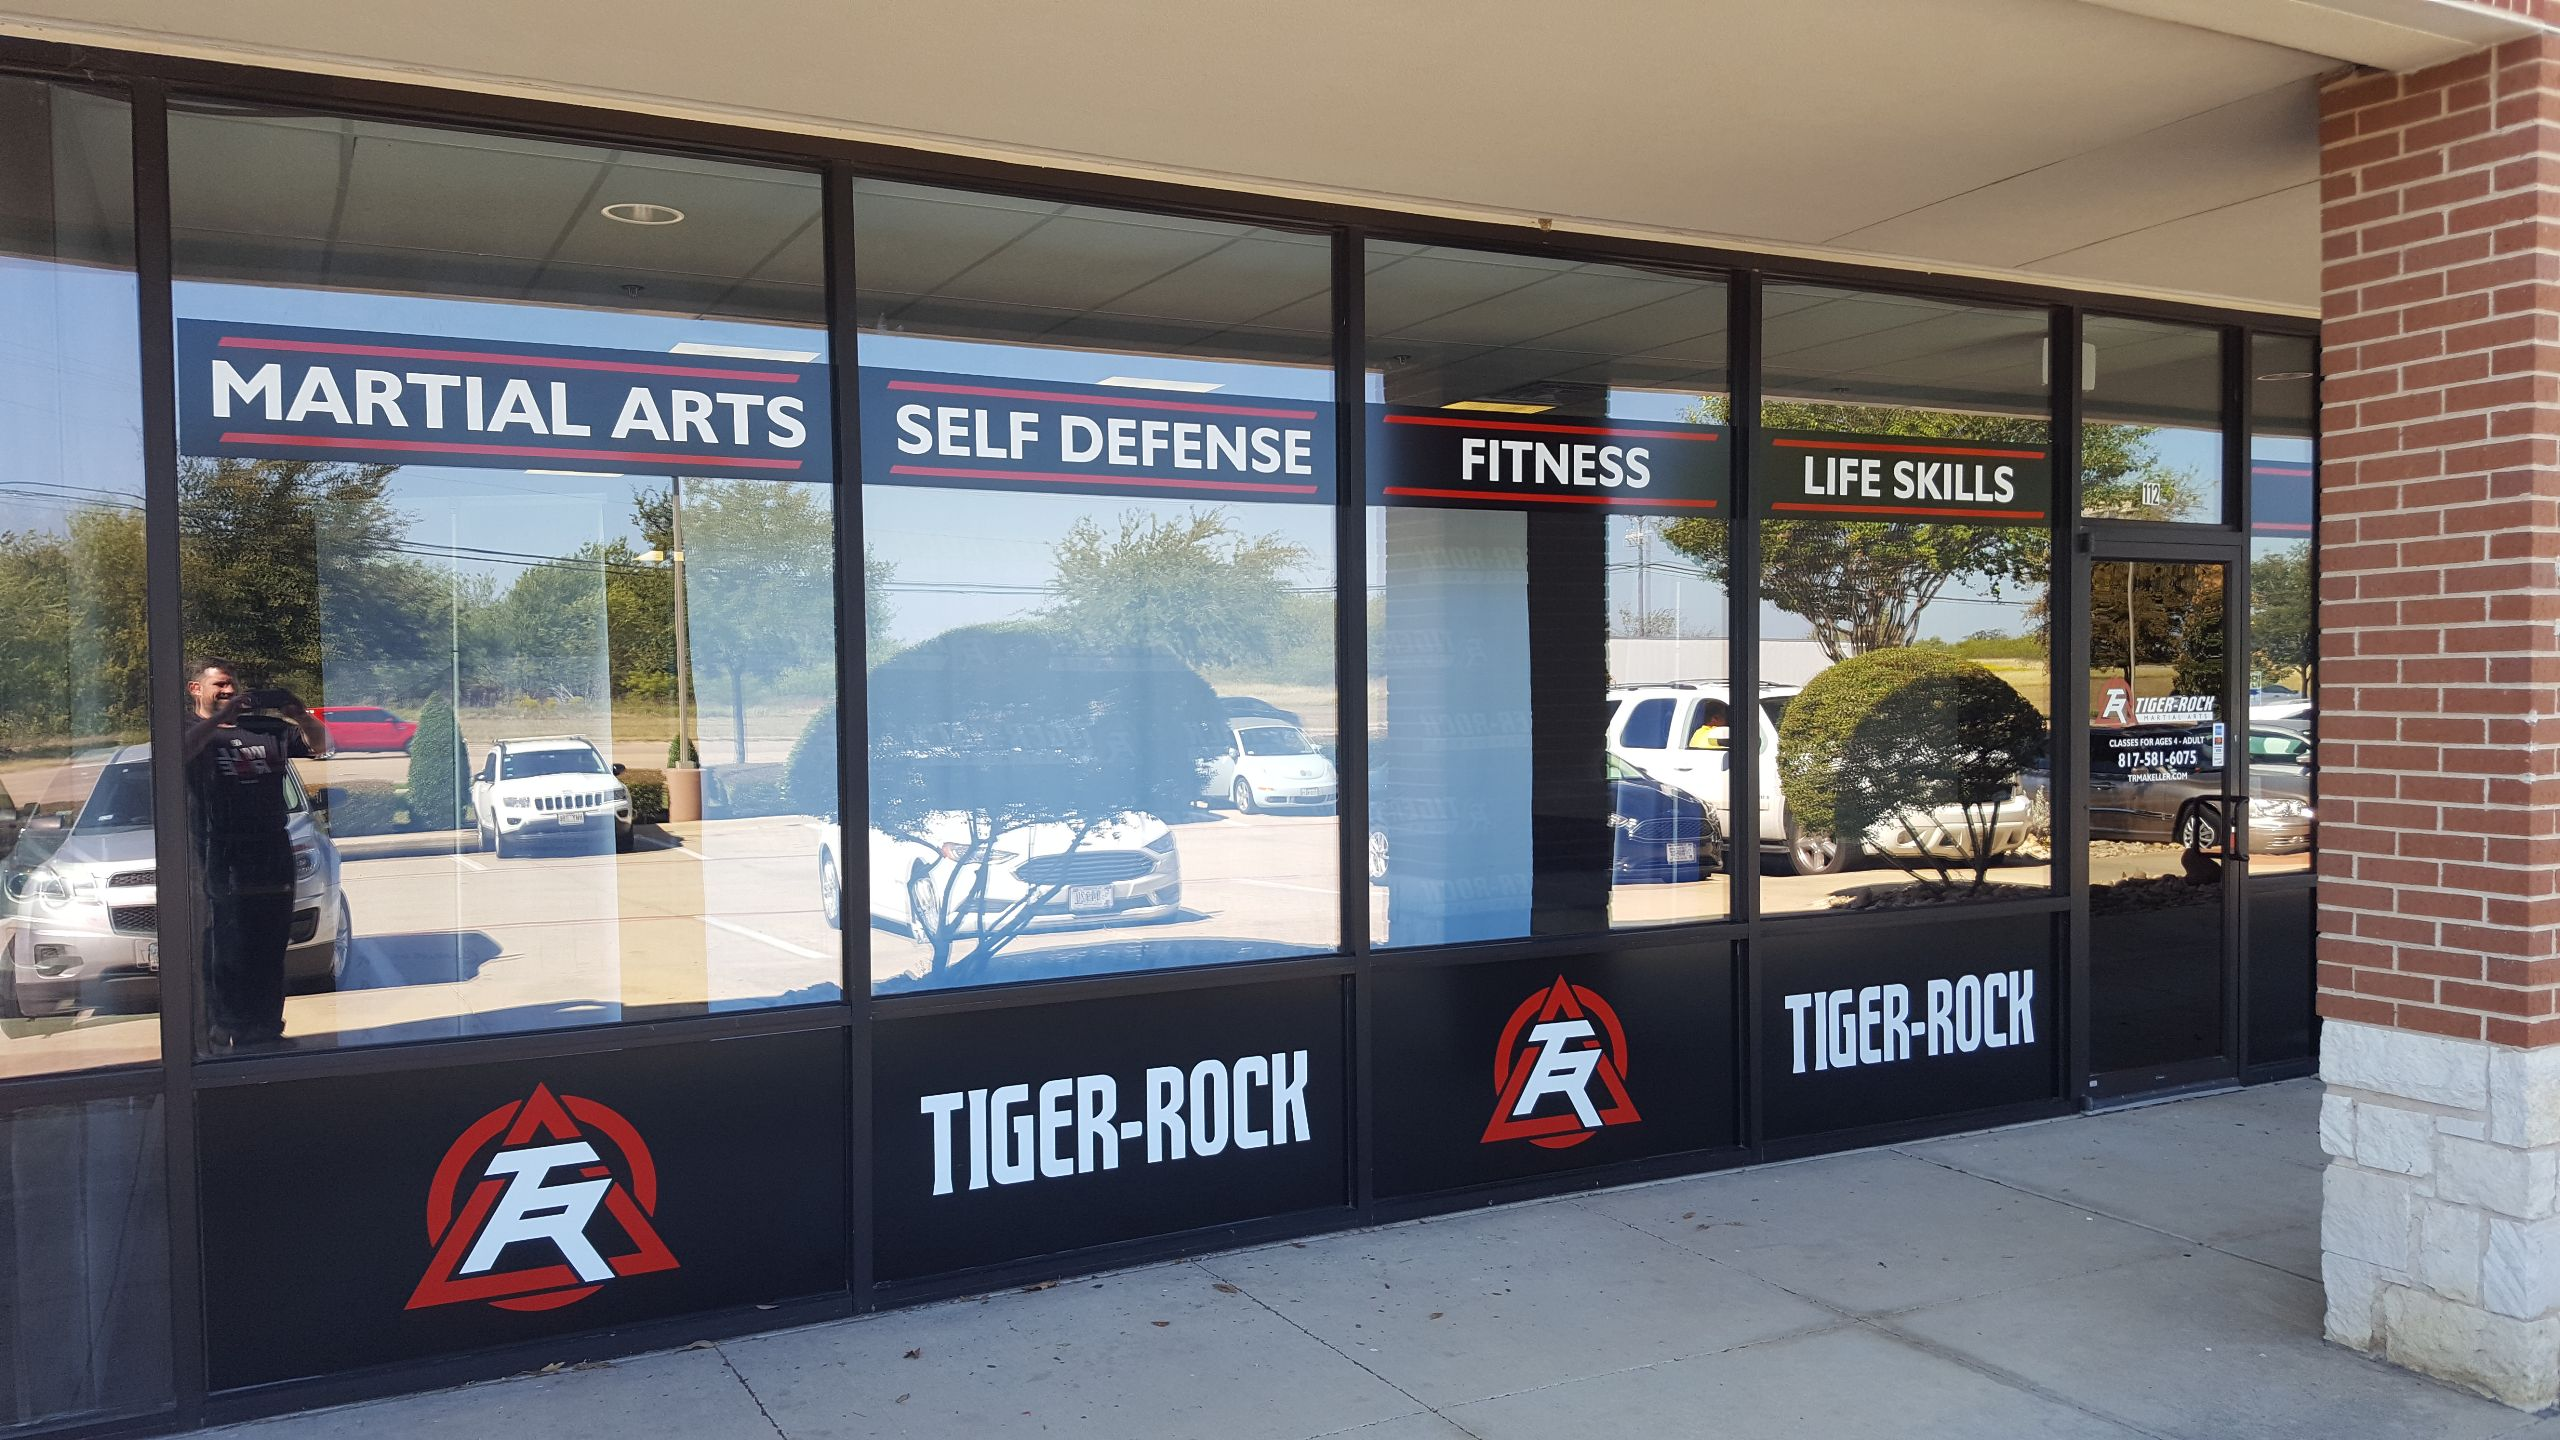 Tiger-Rock Martial Arts of Keller